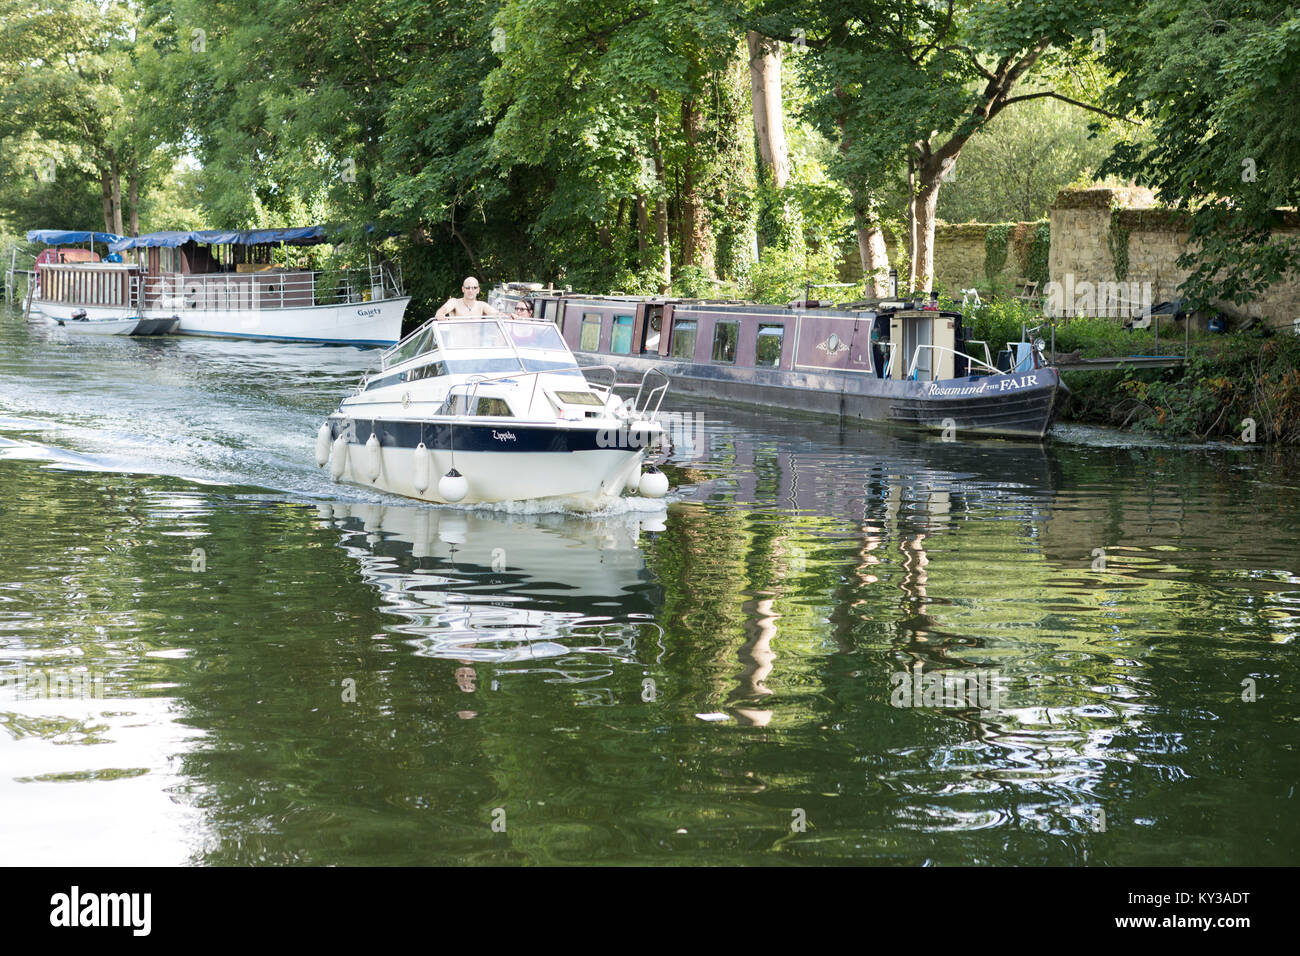 UK, Oxford, river cruiser on the Oxford canal. - Stock Image